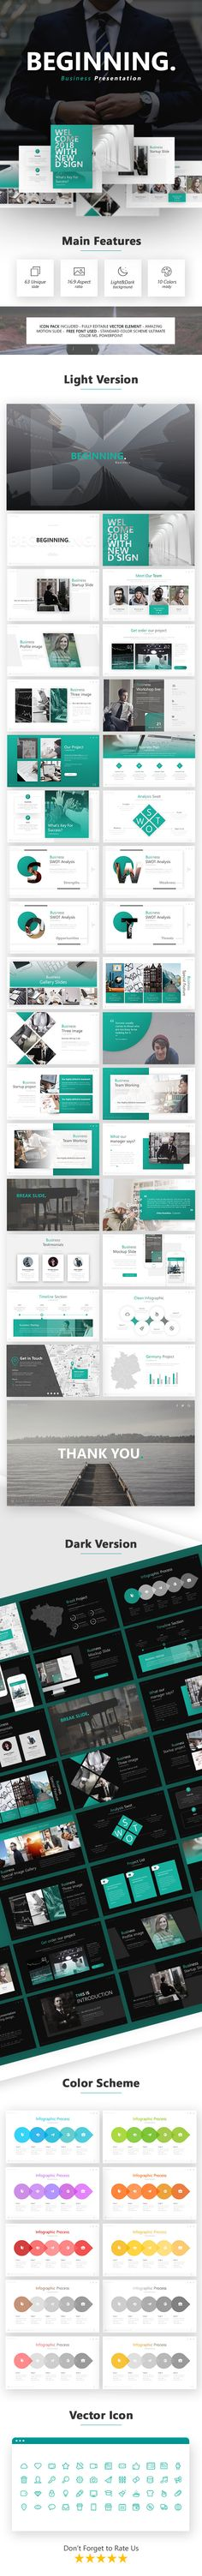 Start-up #Presentation Template - #Business #PowerPoint #Templates